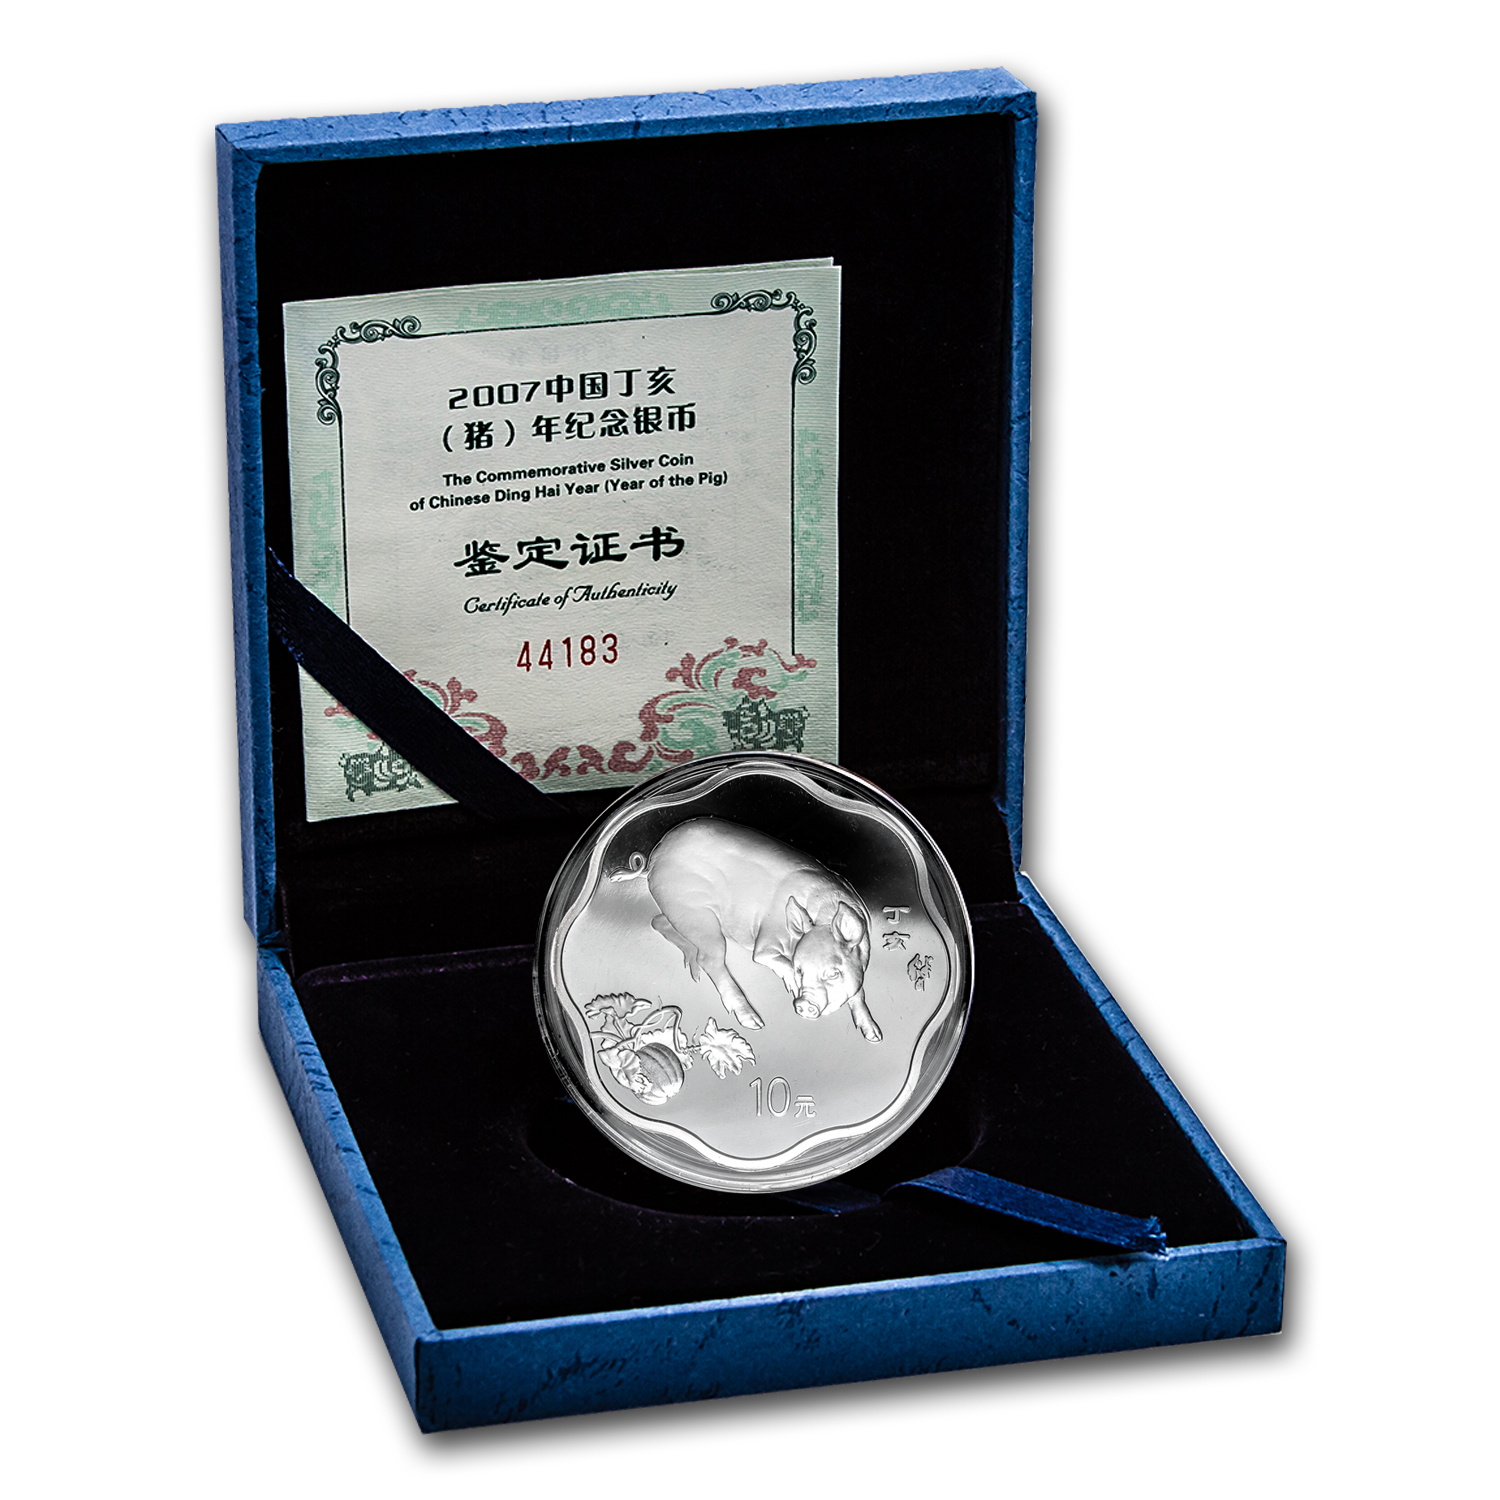 2007 Year of the Pig - 1 oz Silver - Flower Coin (w/Box & CoA)